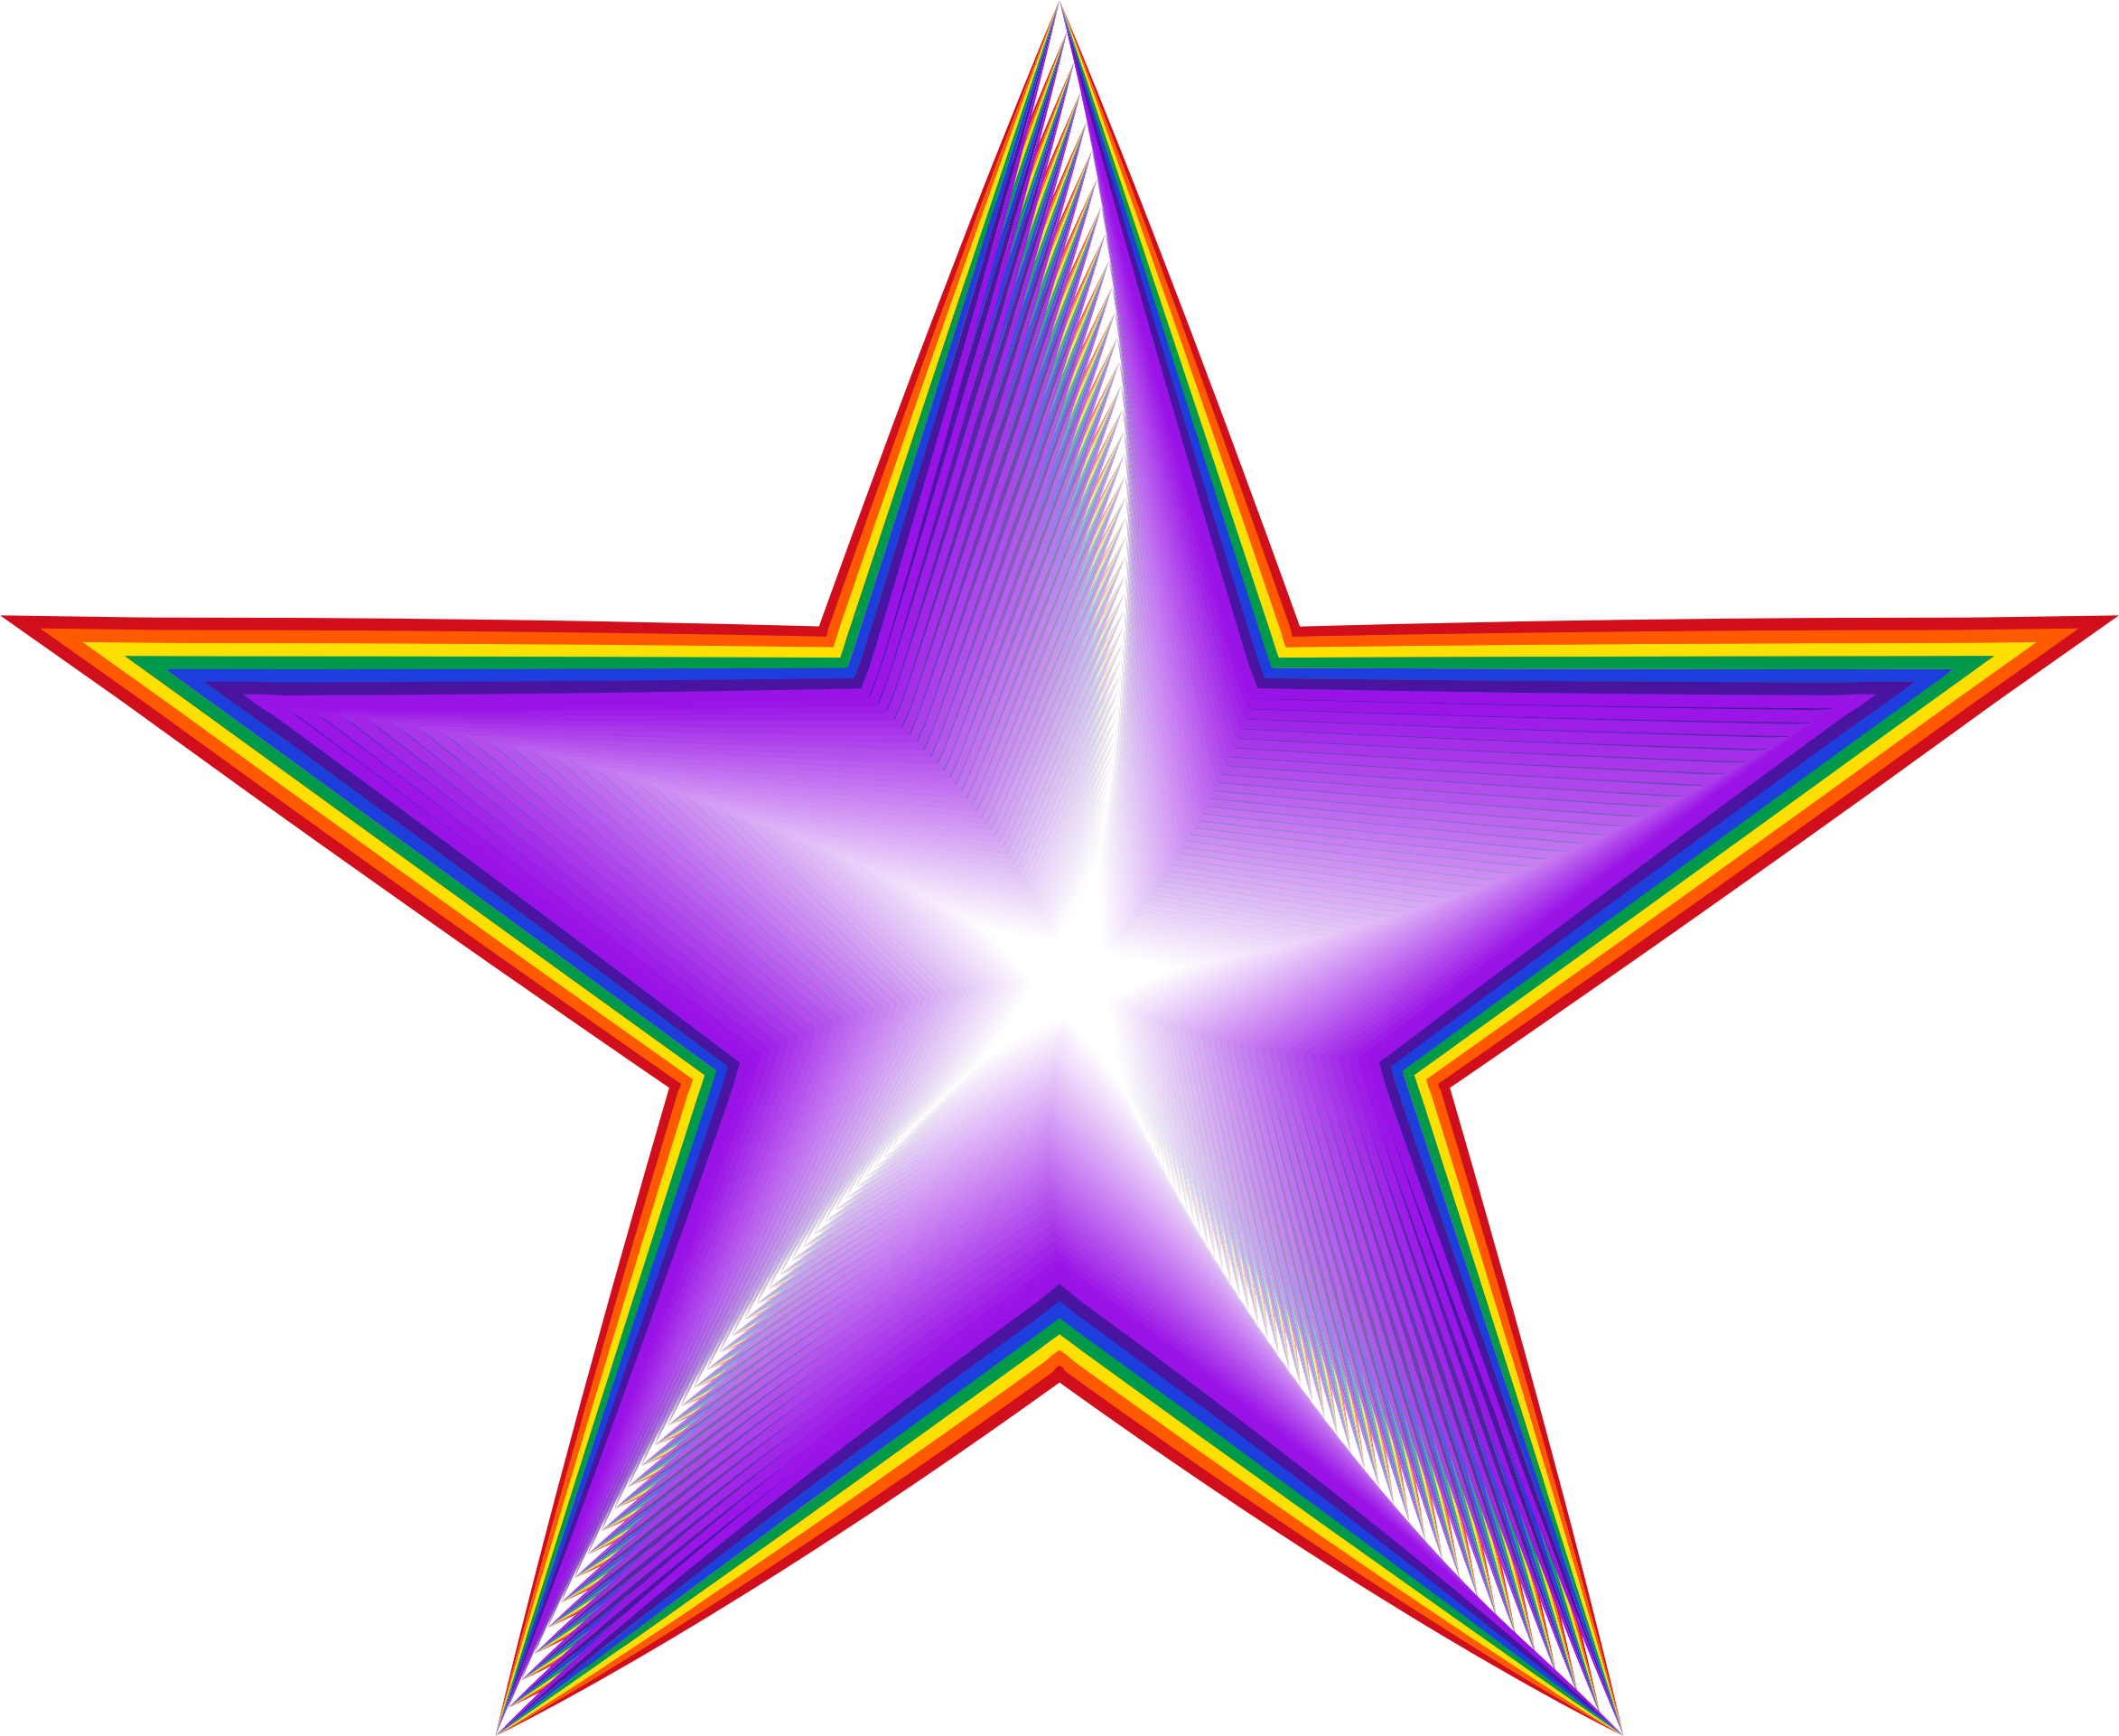 Star rainbow clipart picture library library 28+ Collection of Rainbow Star Clipart | High quality, free cliparts ... picture library library